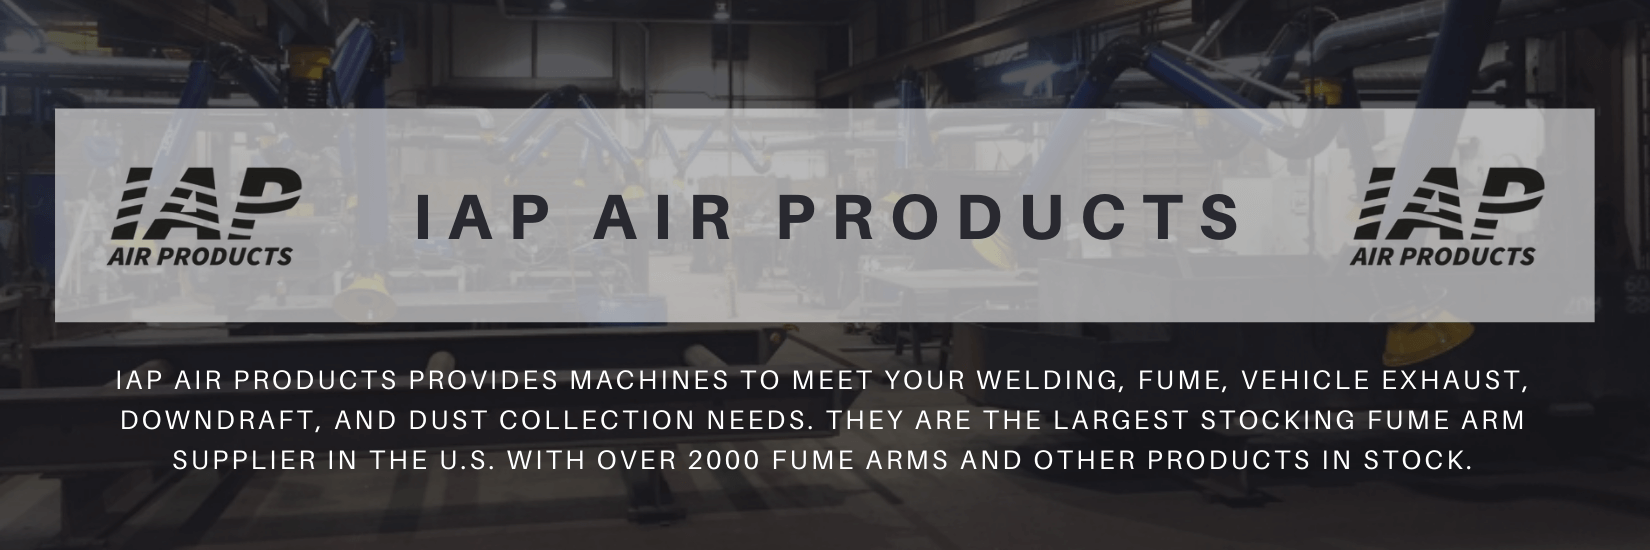 IAP Air Products